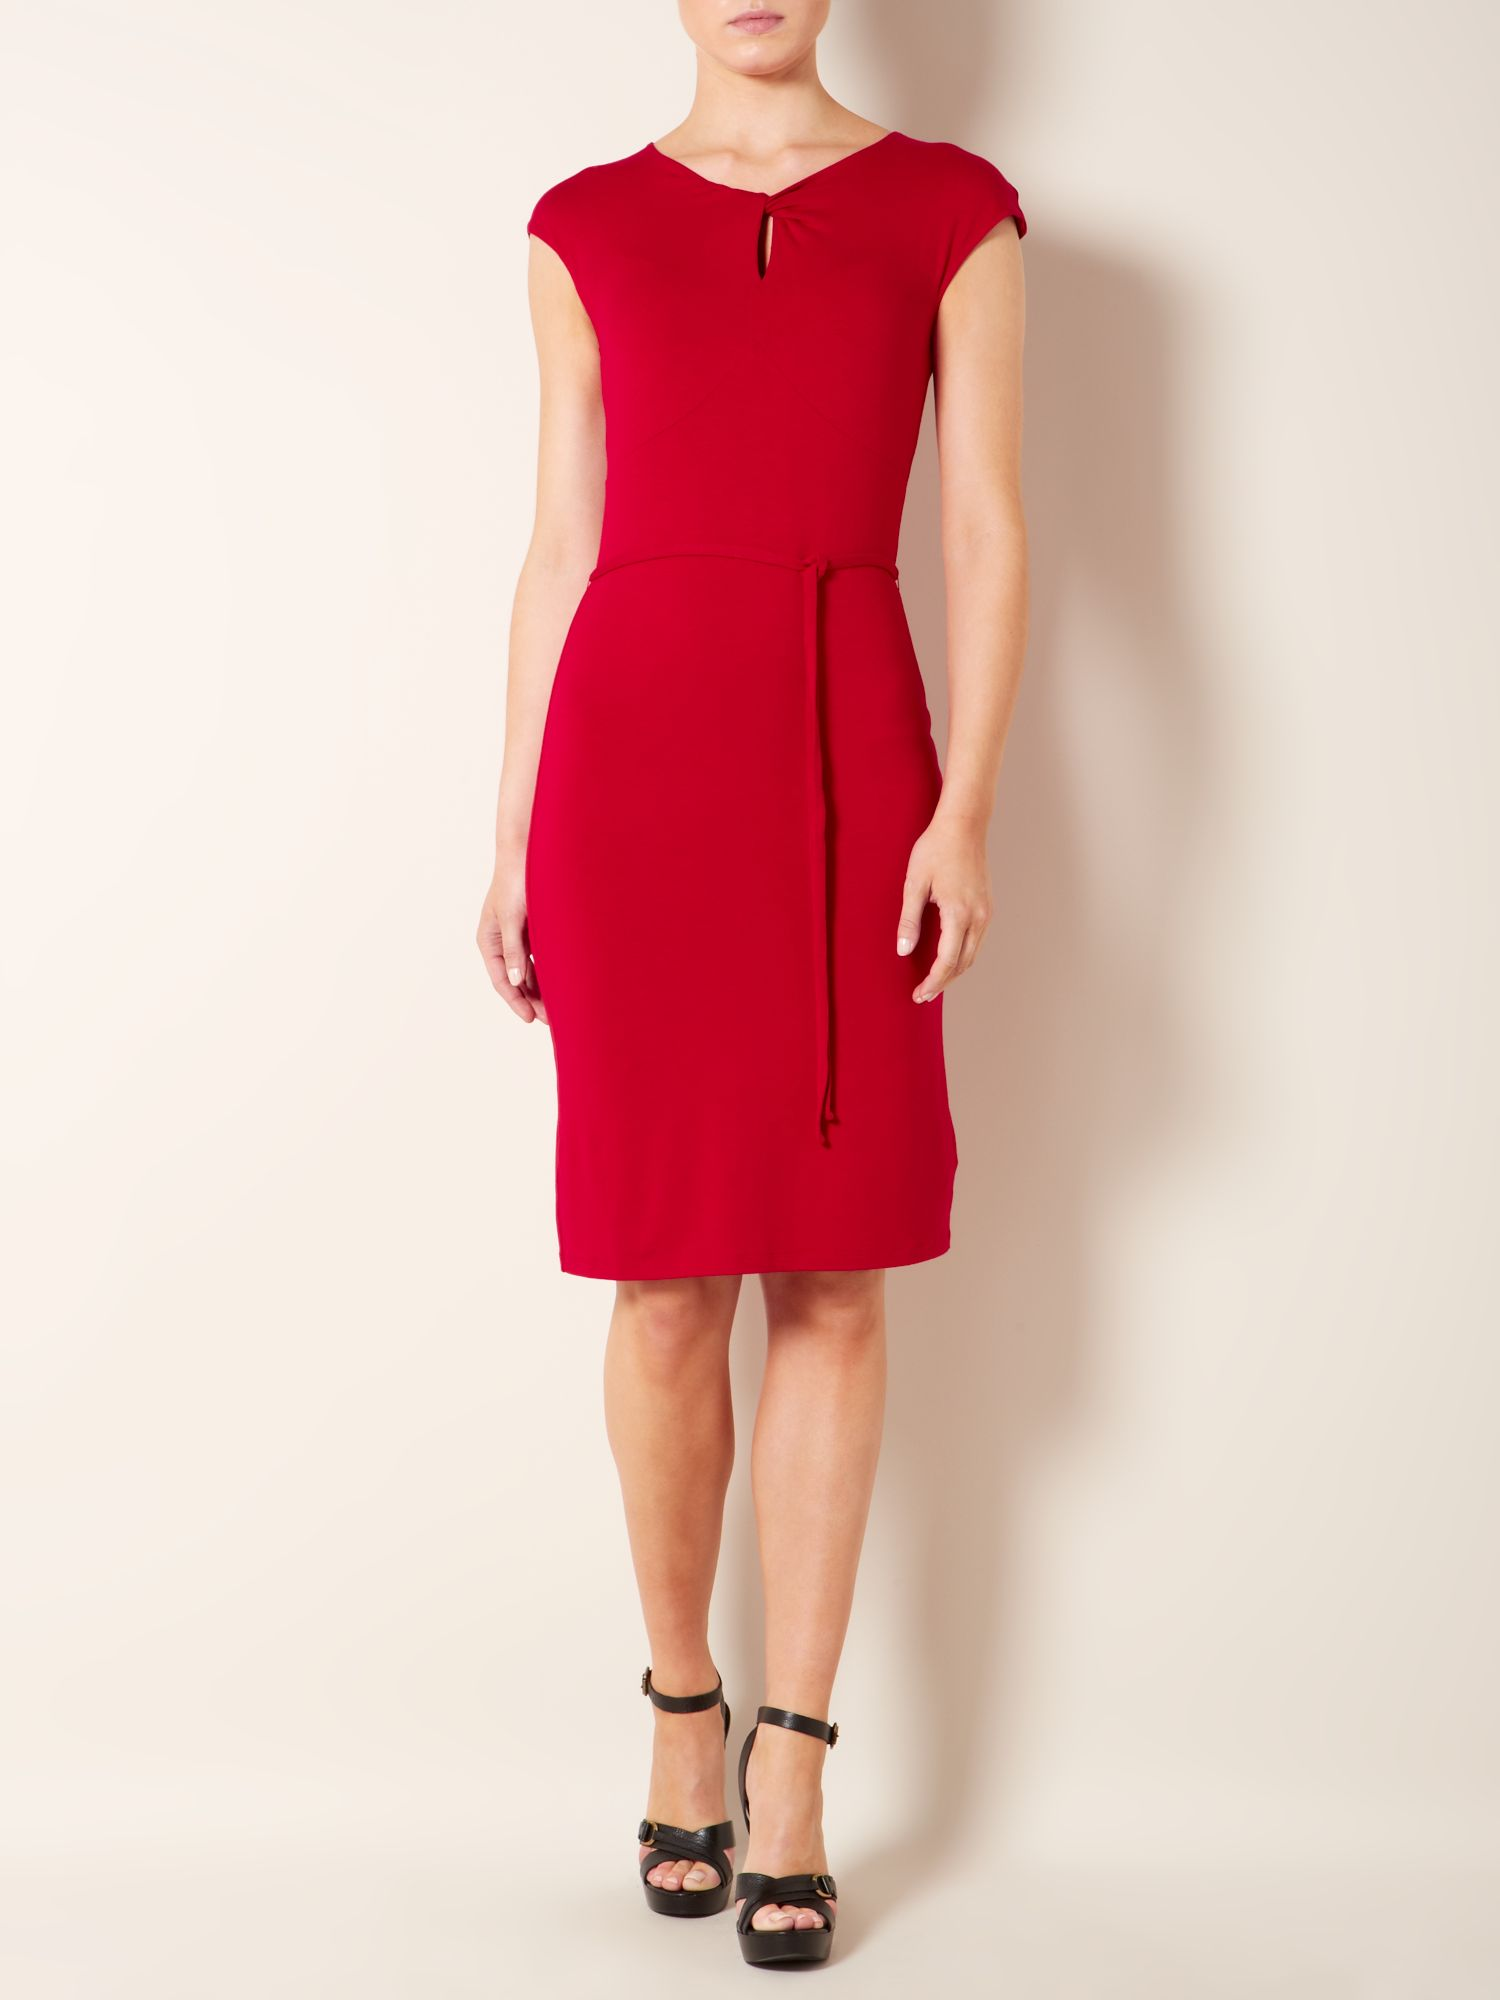 Cap sleeved twist neck dress with tie